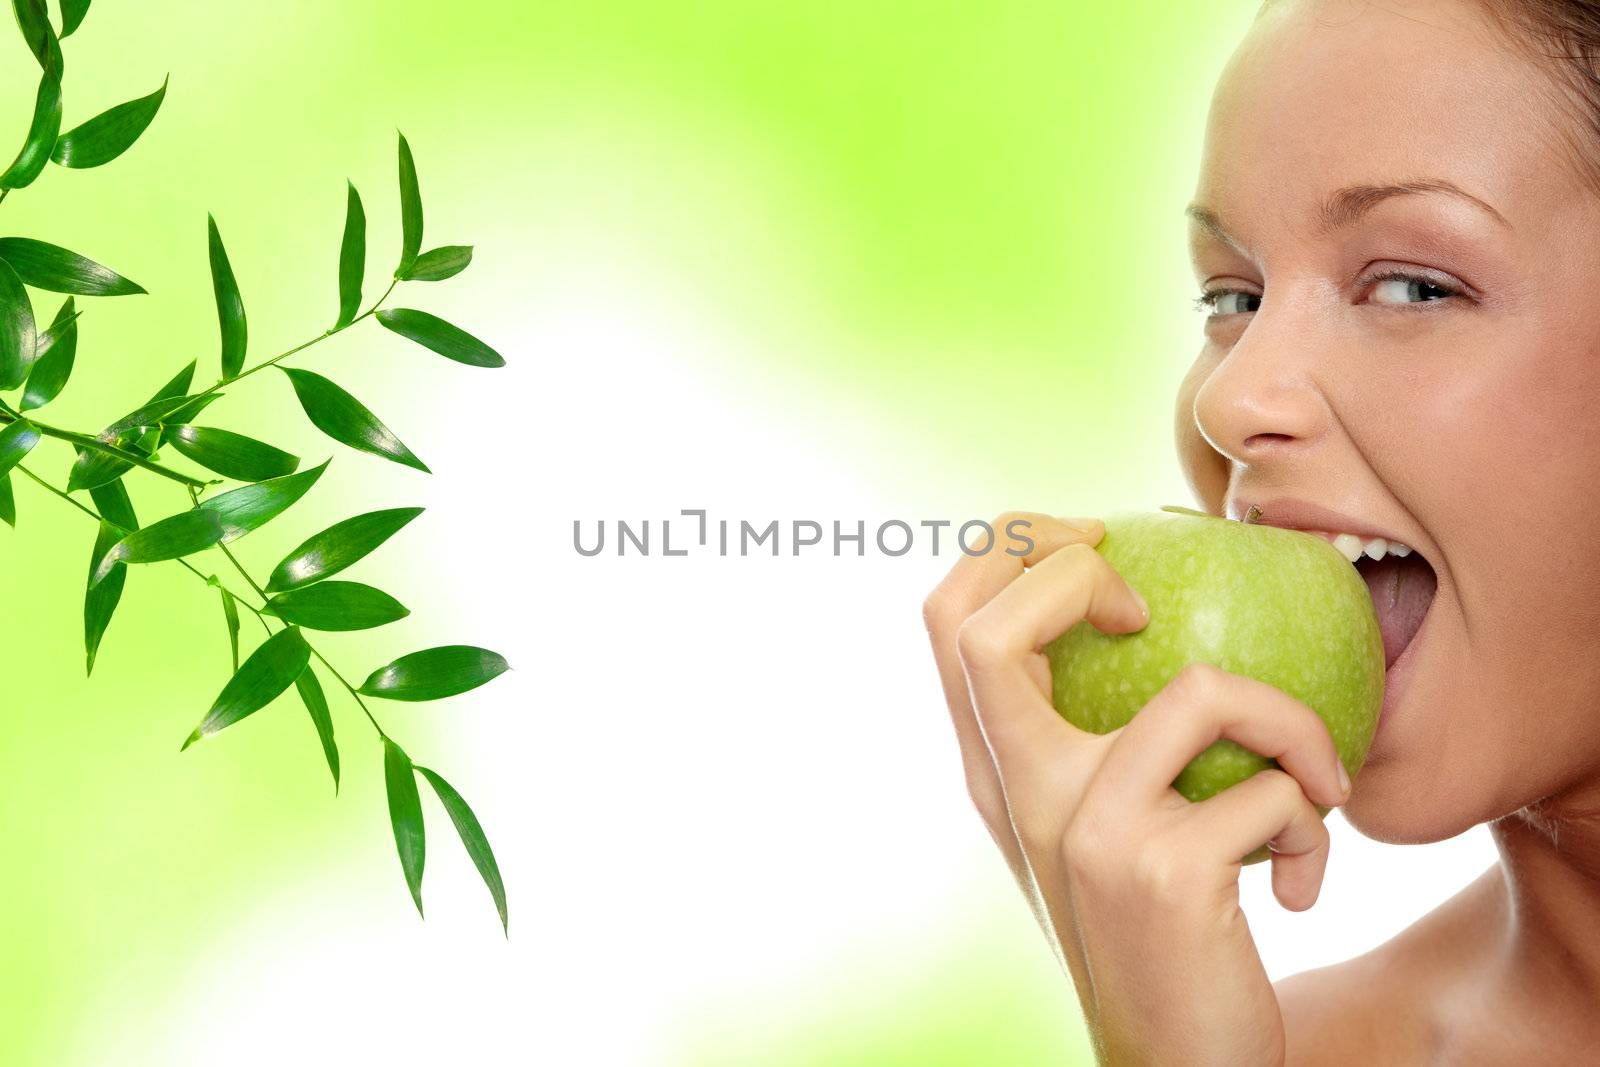 Caucasian beauty with green apple, against abstract green background